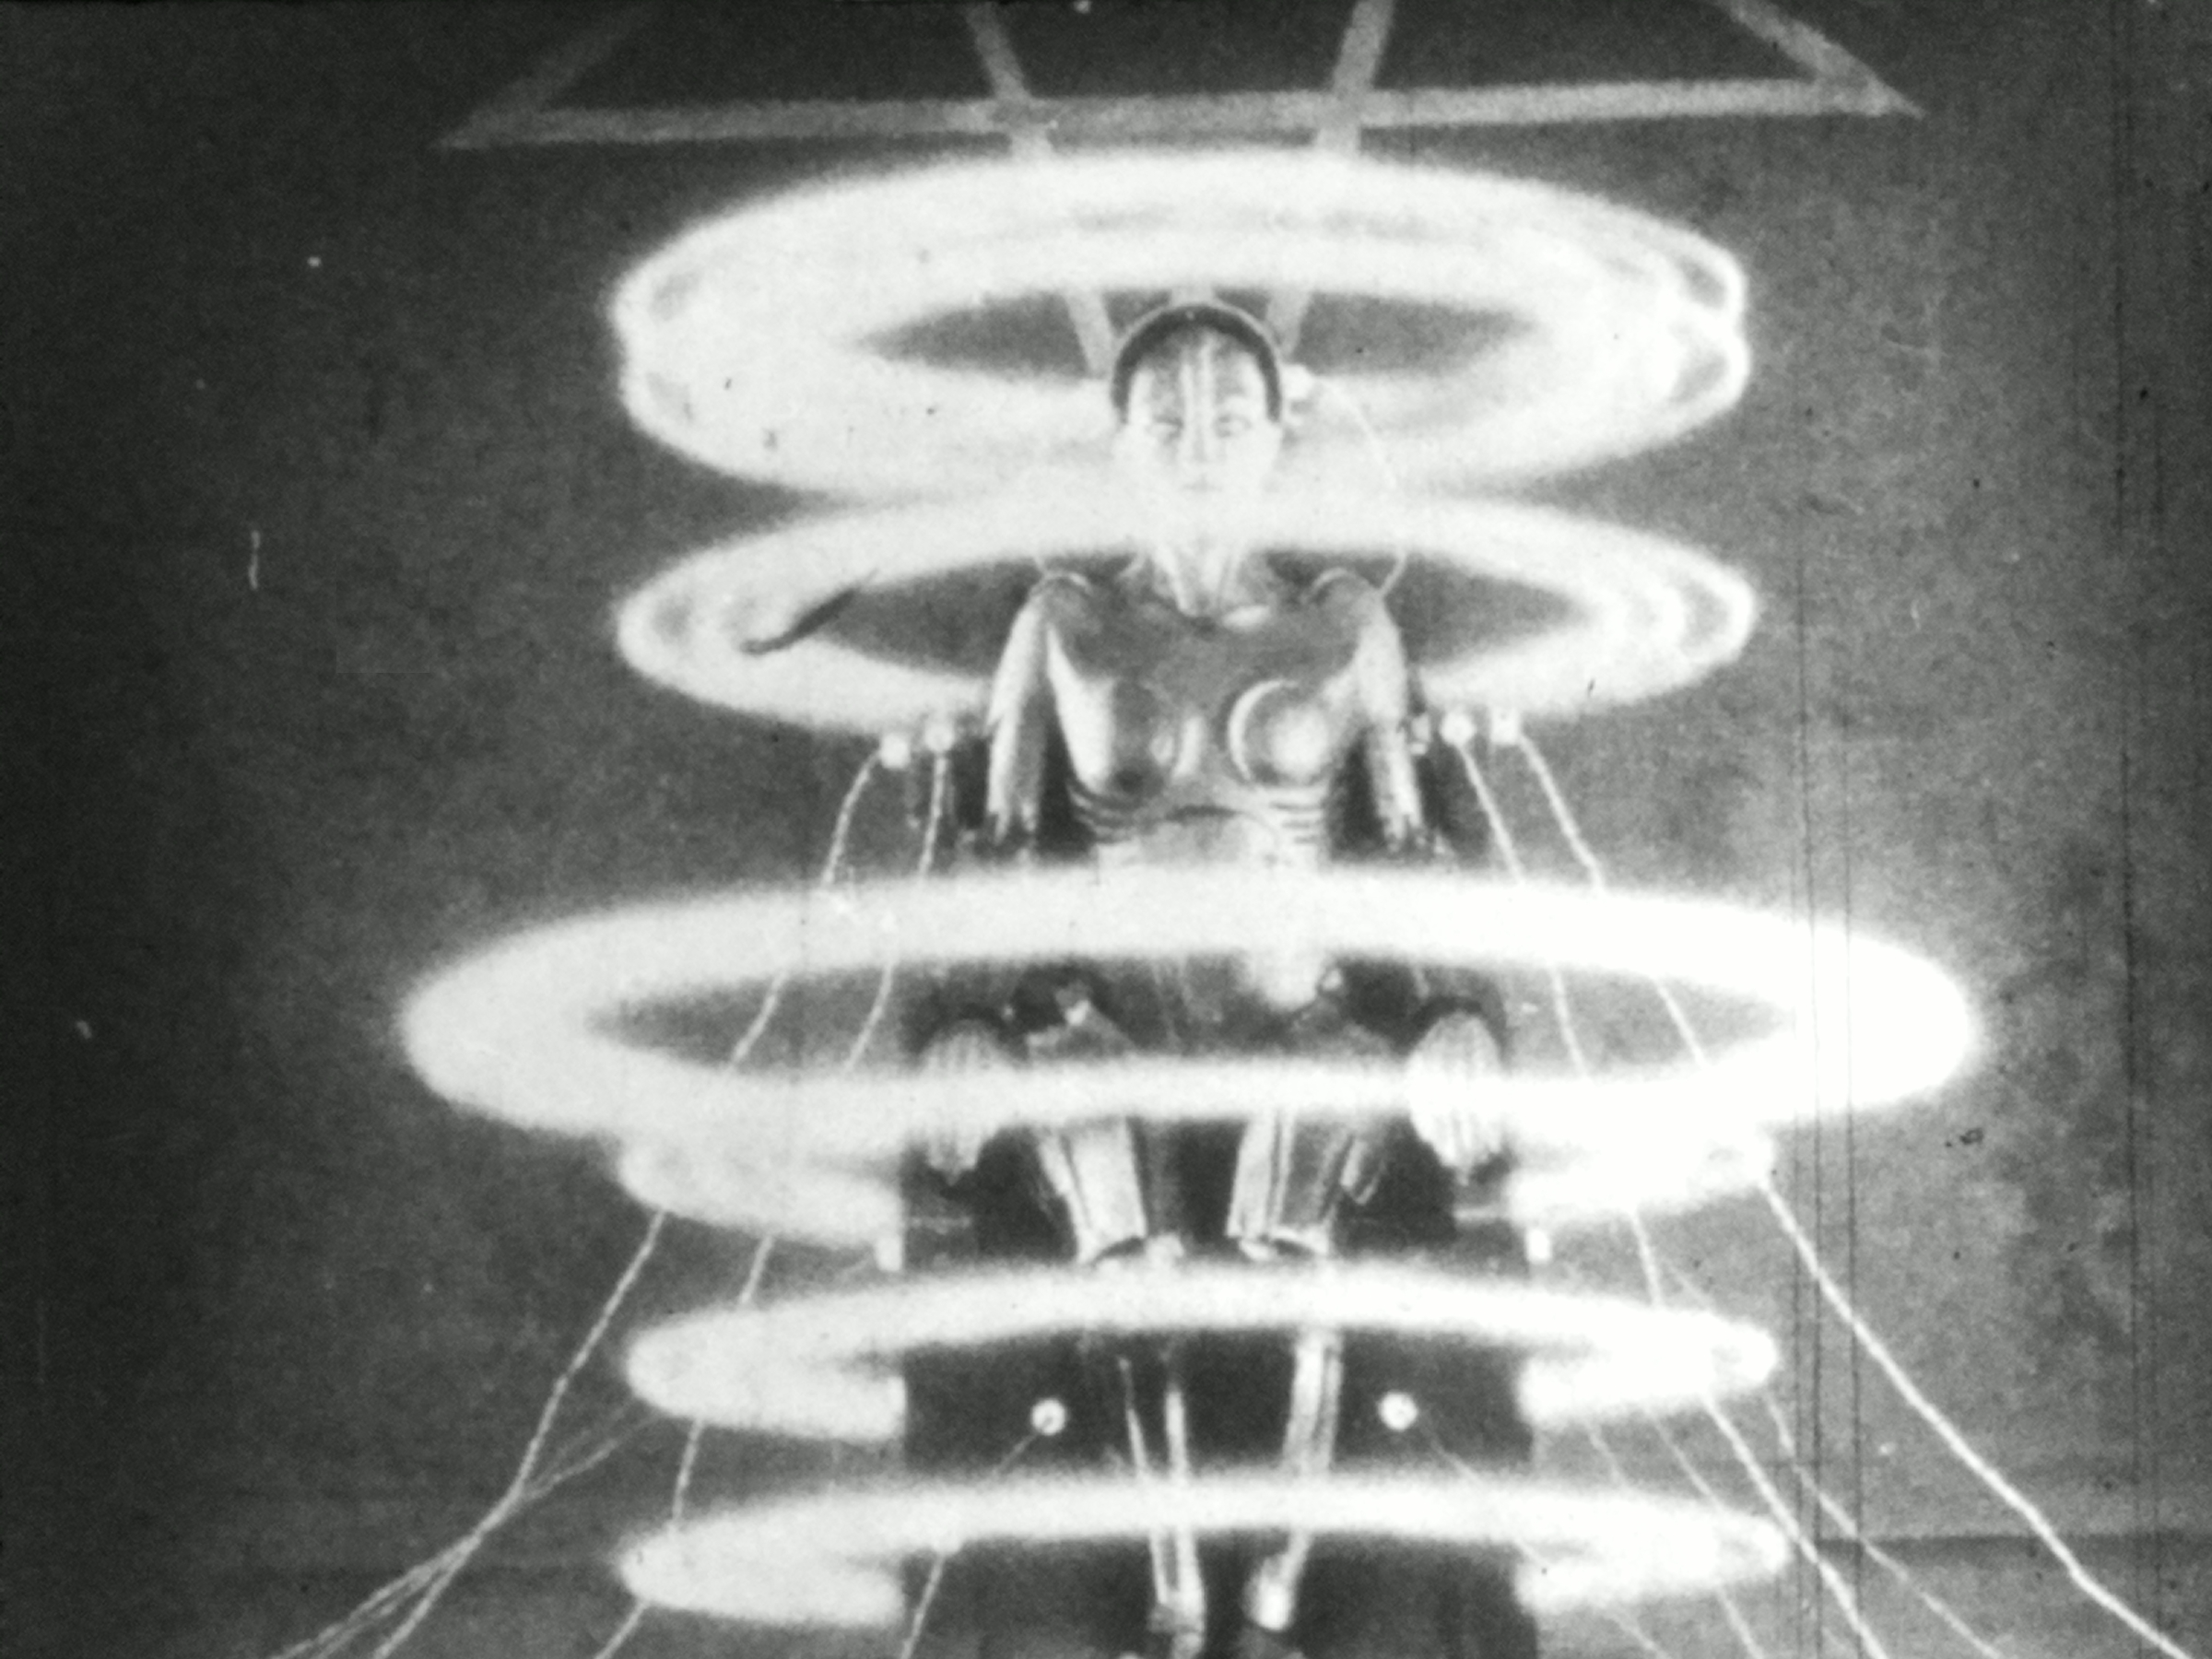 1927- Metropolis (Fritz Lang)1930s UK Pathescope 9.5mm version